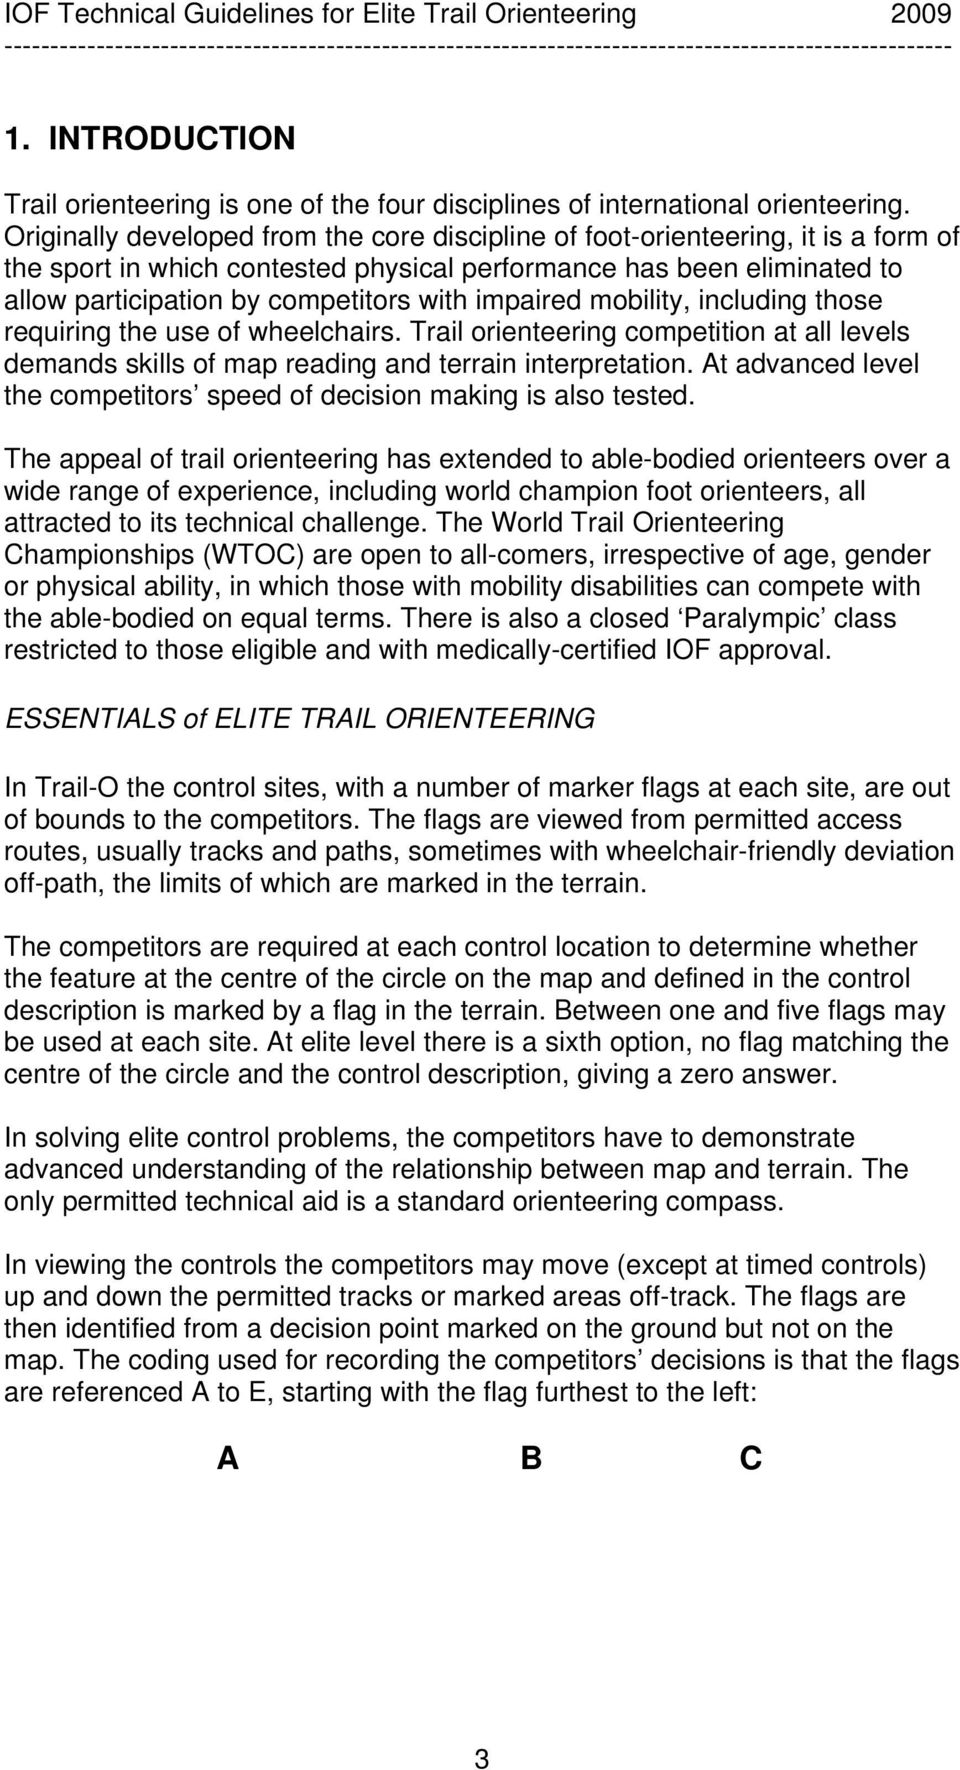 impaired mobility, including those requiring the use of wheelchairs. Trail orienteering competition at all levels demands skills of map reading and terrain interpretation.